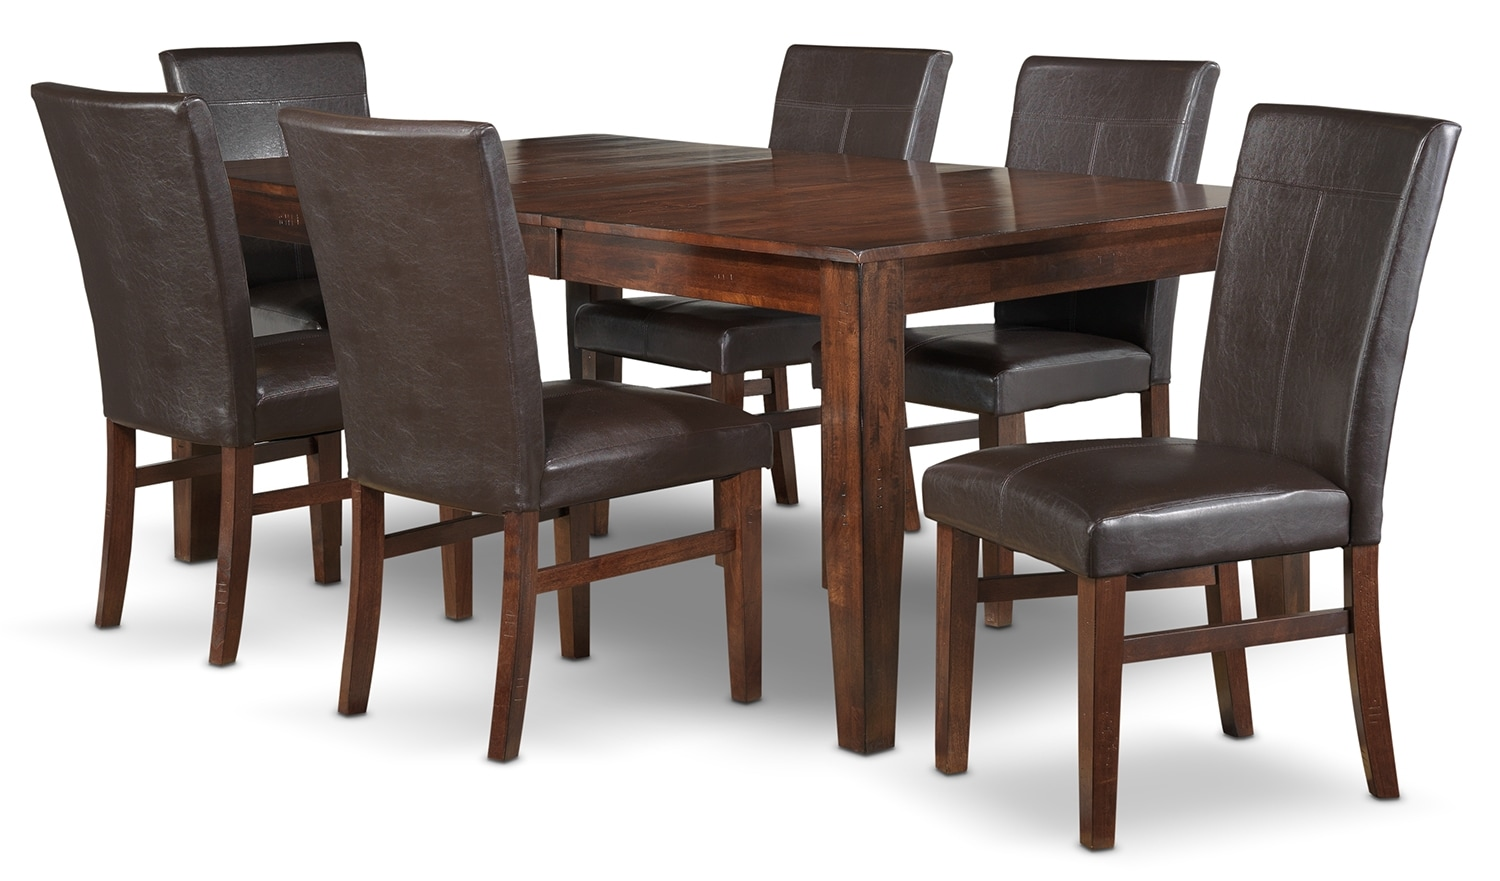 Kona 7 Piece Dining Room Set